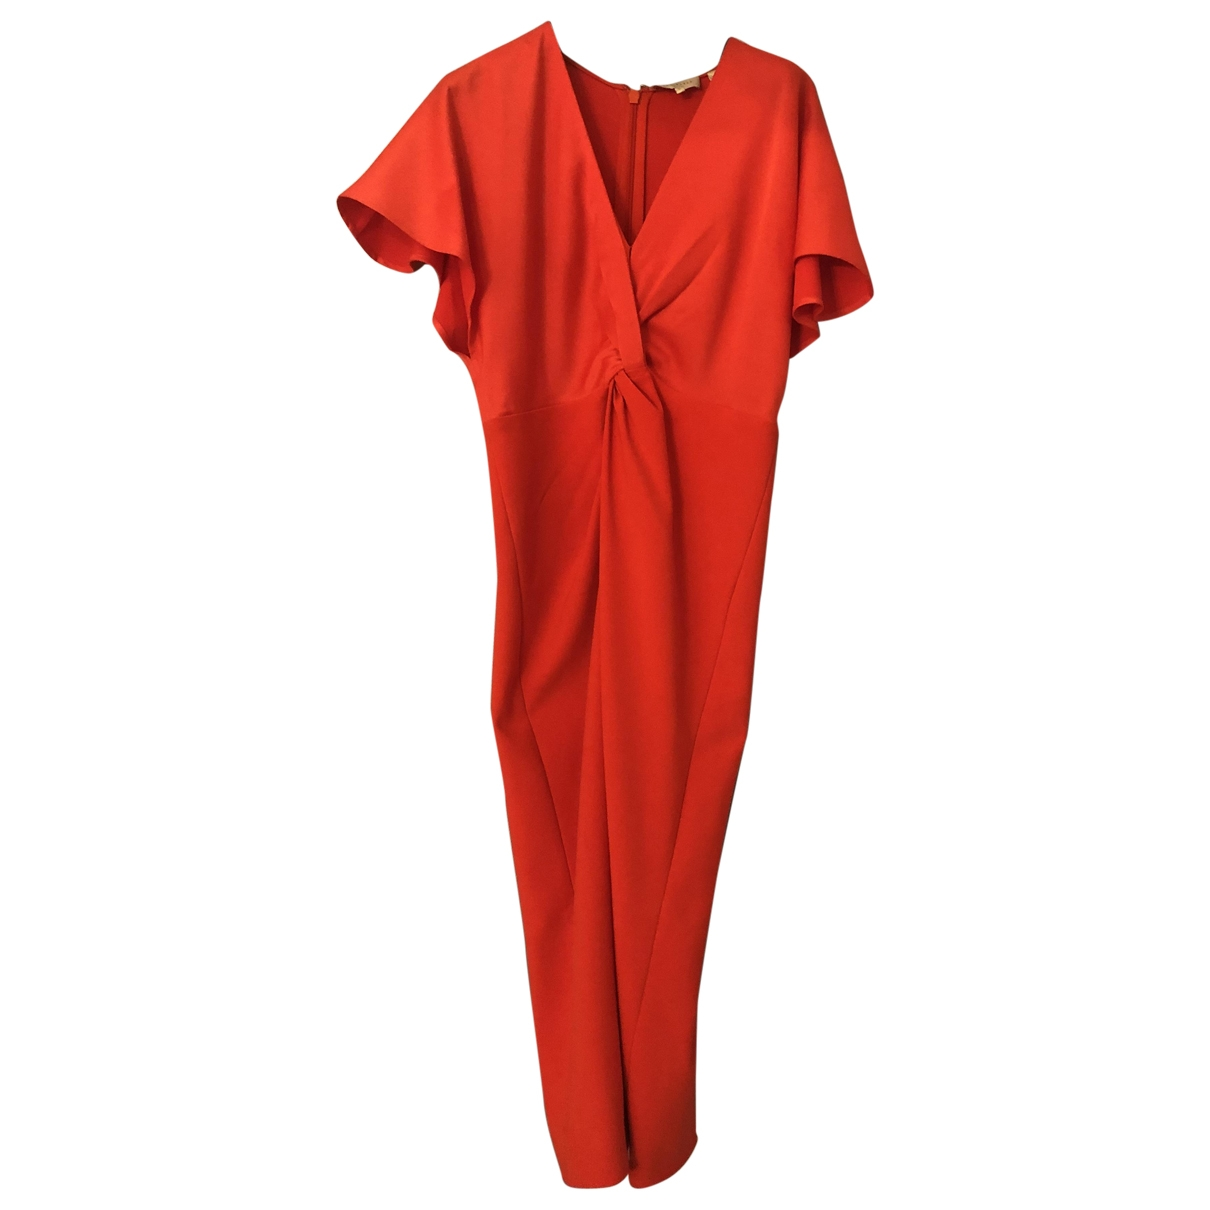 Ted Baker \N Red dress for Women 10 UK